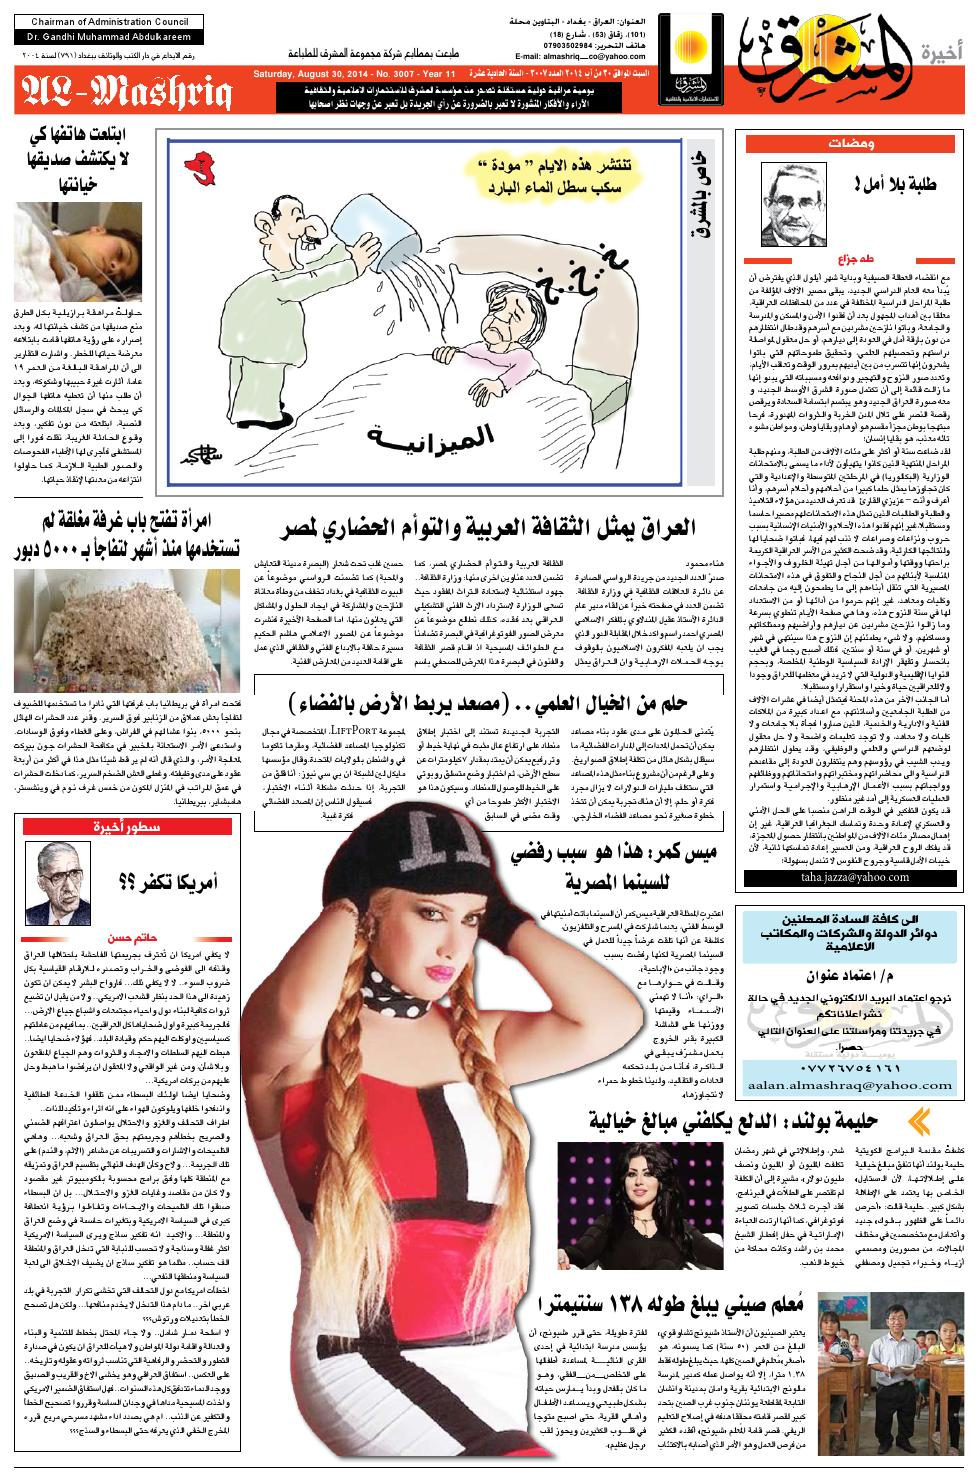 bb0a65dab 3007 AlmashriqNews by Al Mashriq Newspaper - issuu